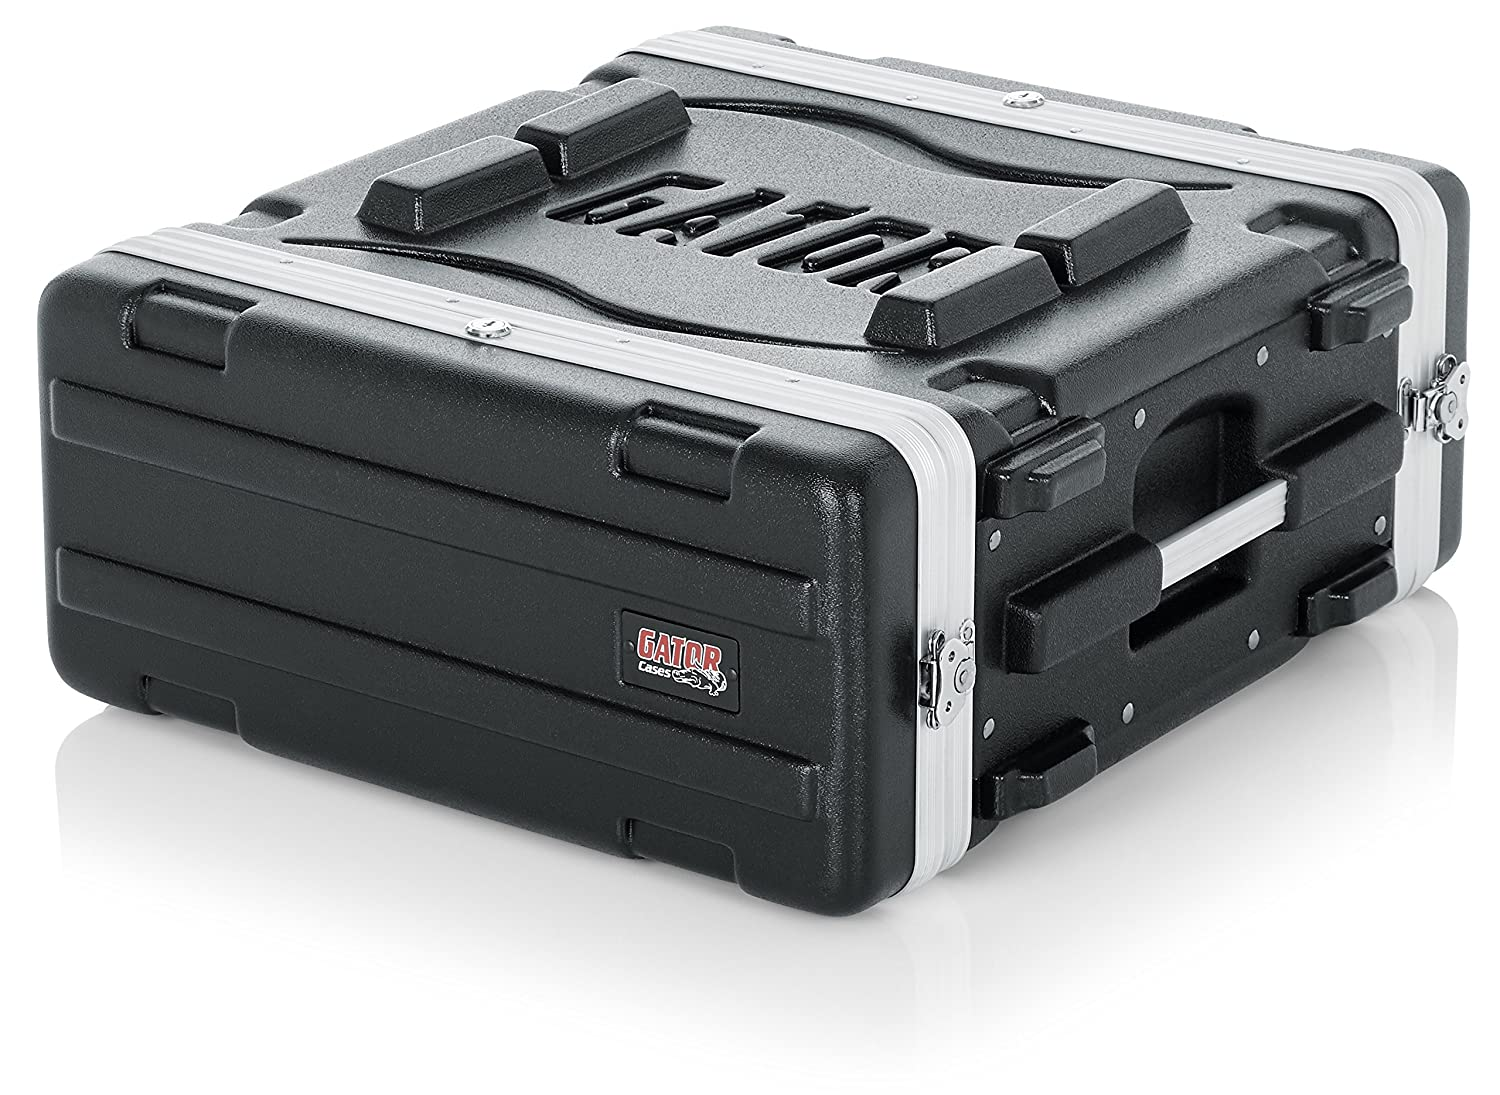 Gator Molded PE 2U 19.25 inch Deep Rack Case with Front / Rear Rails and Locking GR-2L GR2 GR2L Musical Instrument Accessories Portable_Electronics abs polyethylene